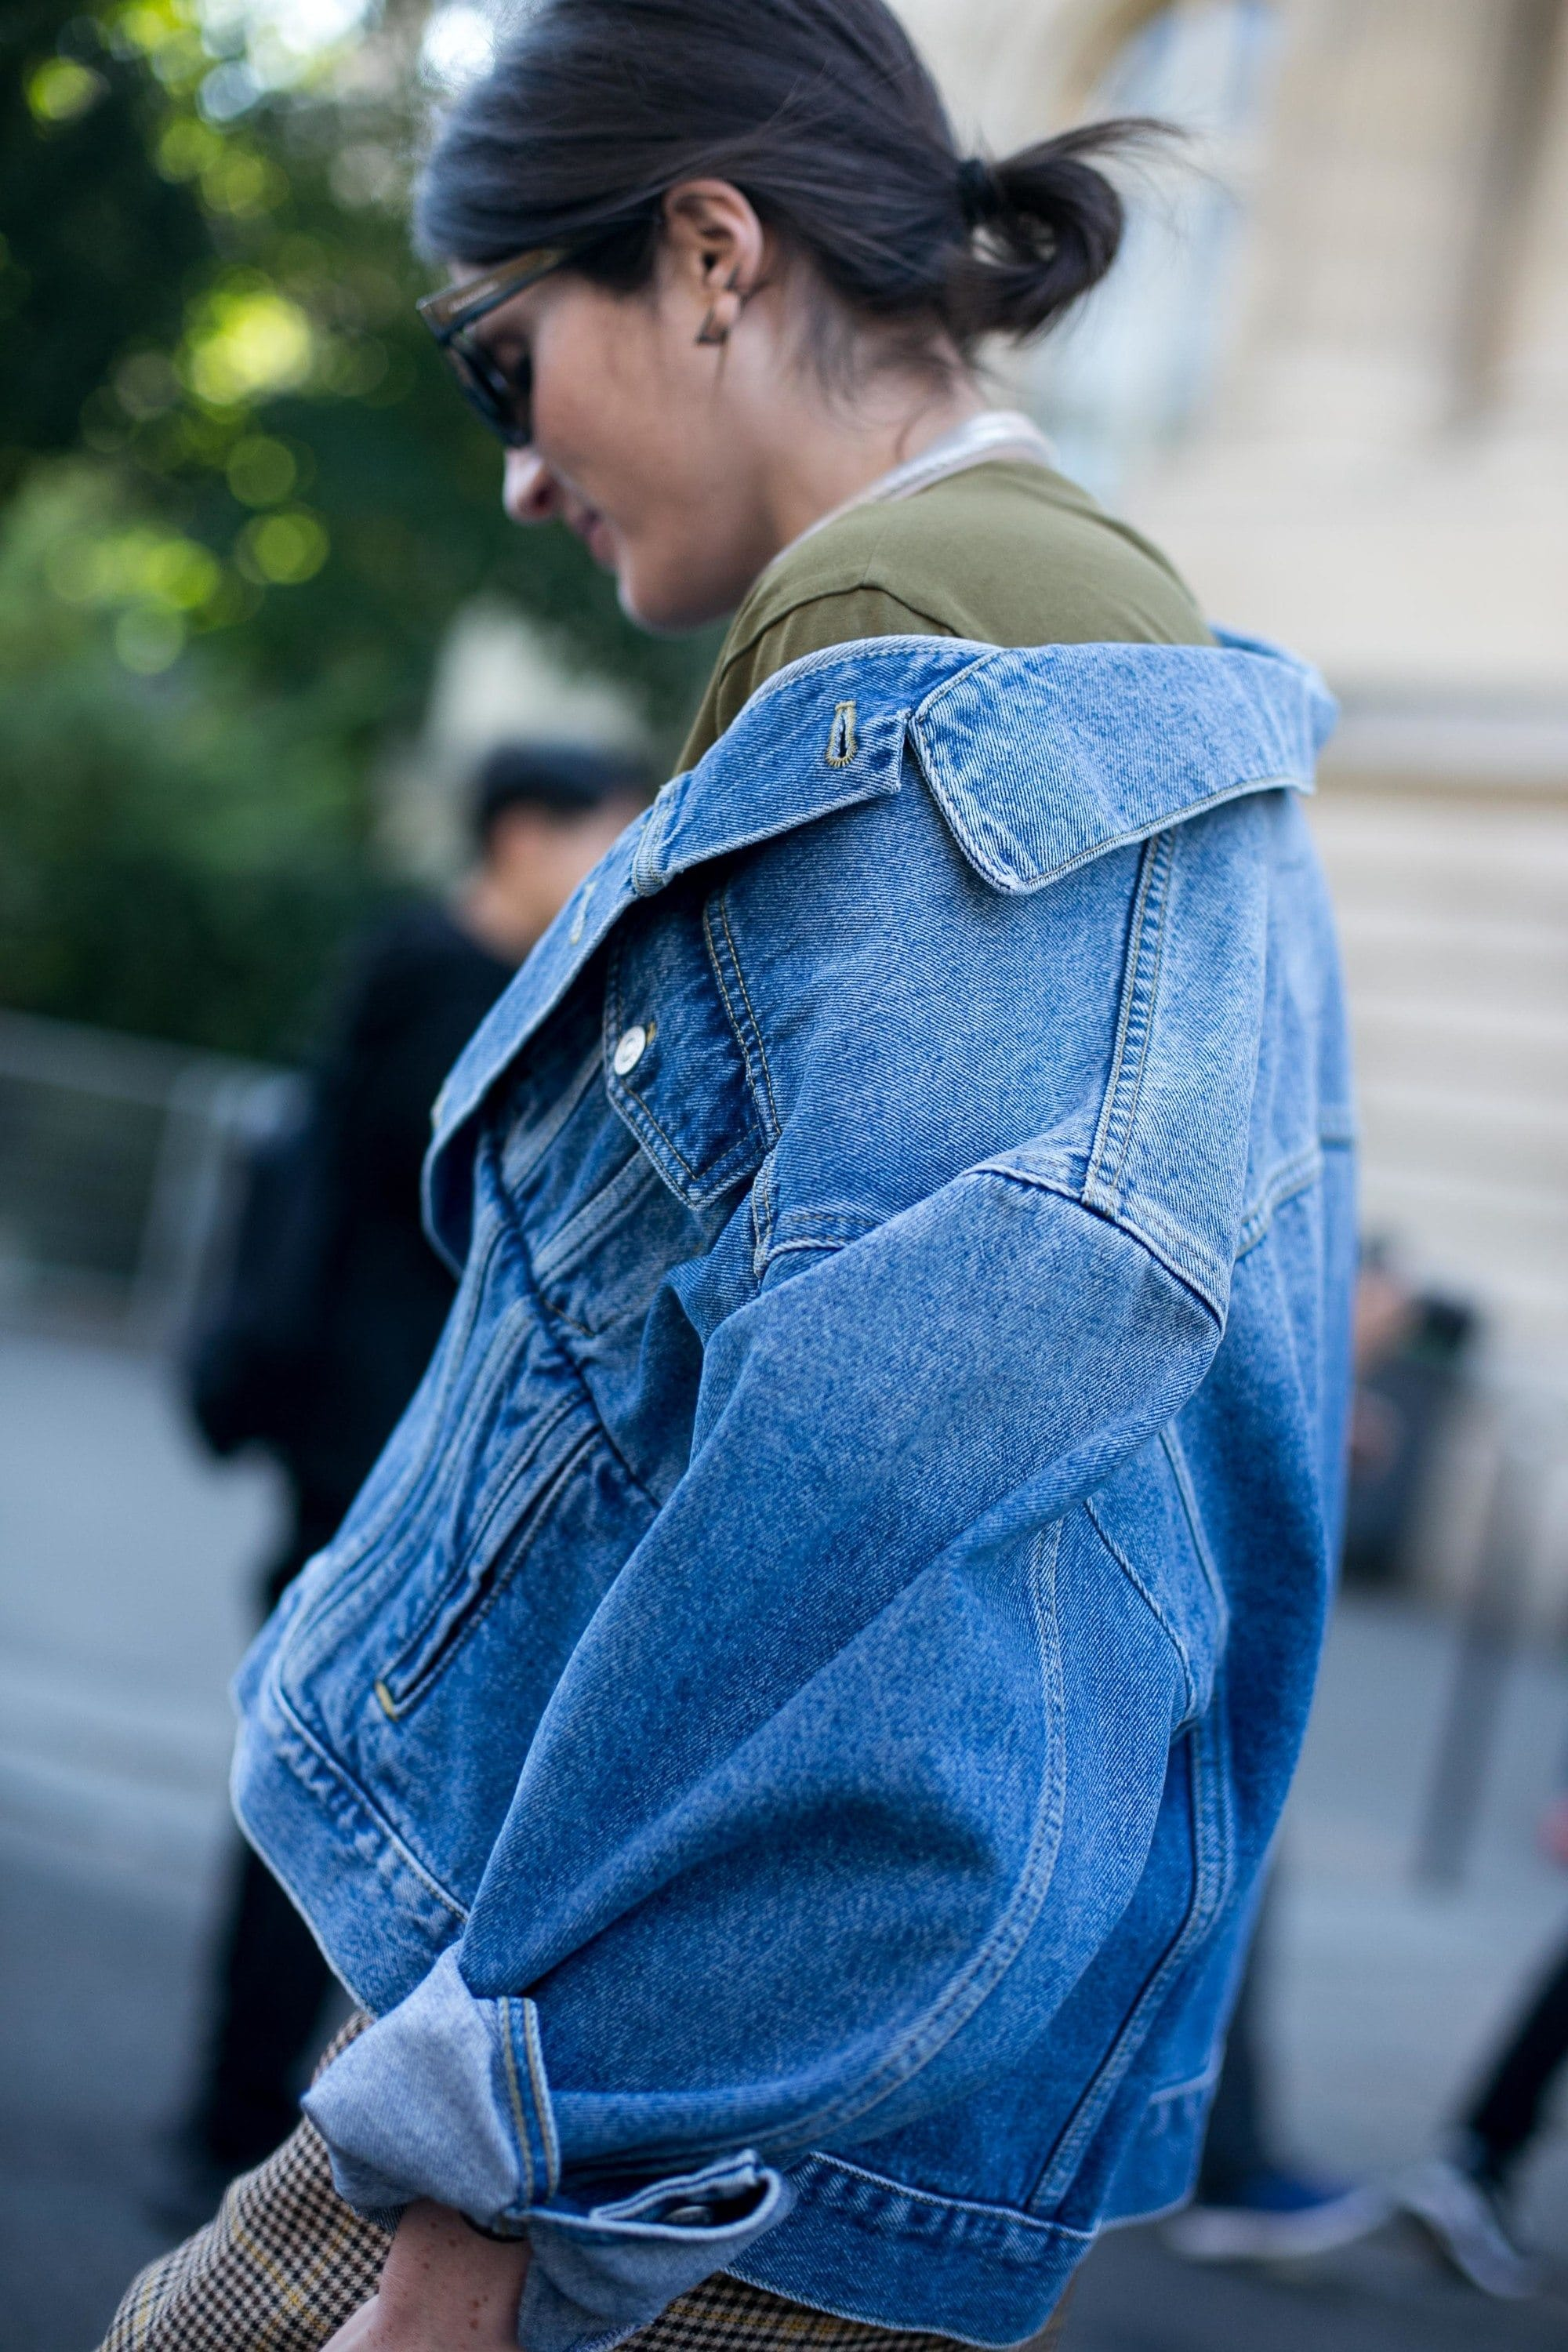 Windswept hair: Street style shot of a brunette woman with her hair in a messy bun wearing an oversized denim jacket